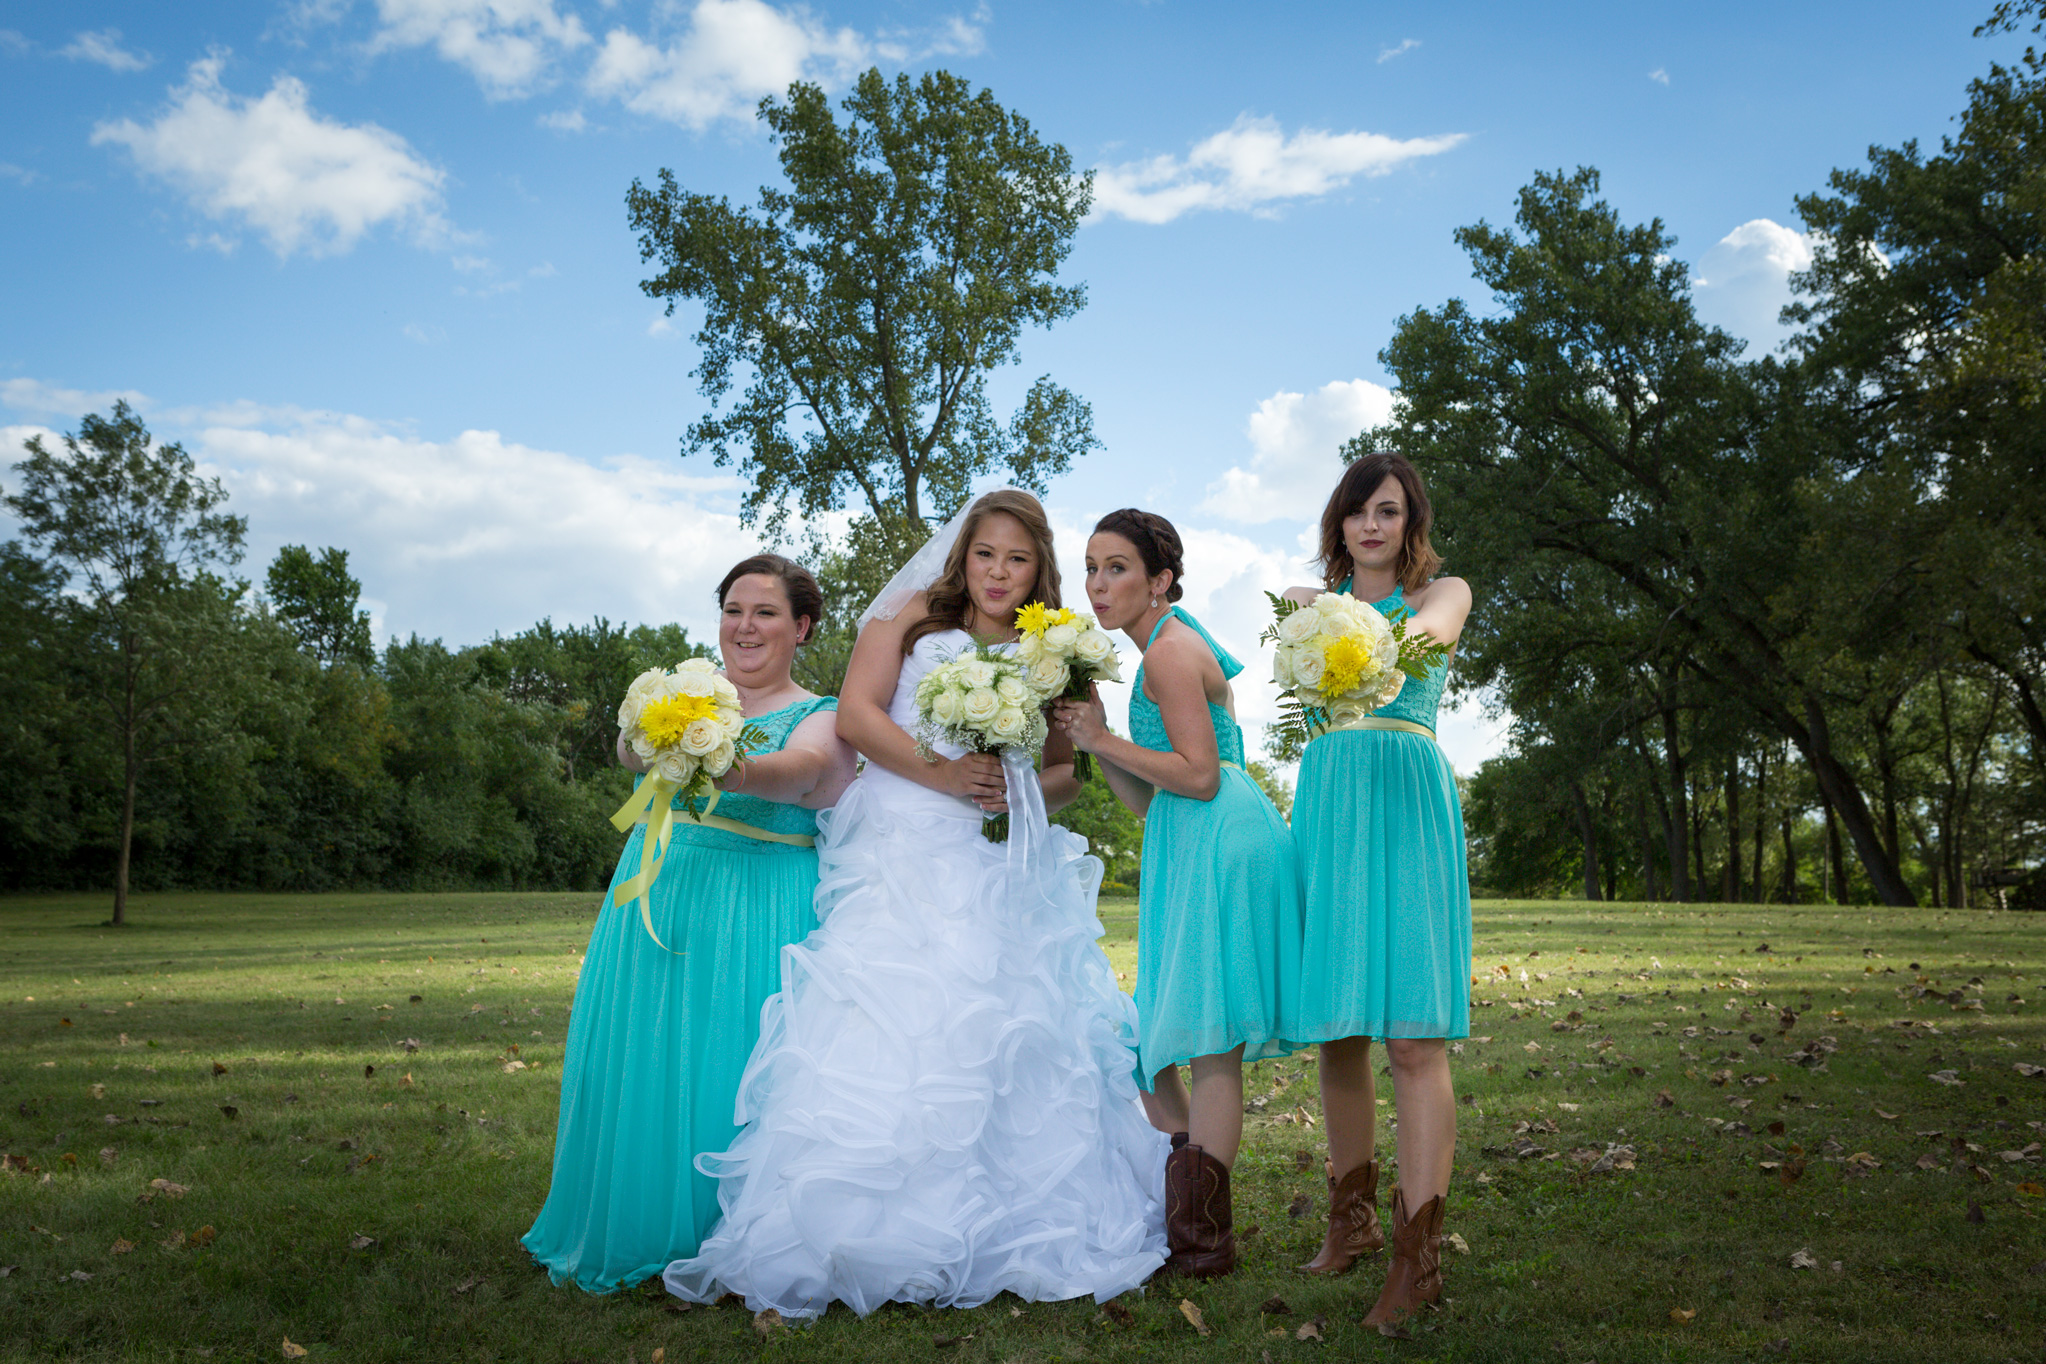 bride_bridemaids_formal_photograph_2.jpg